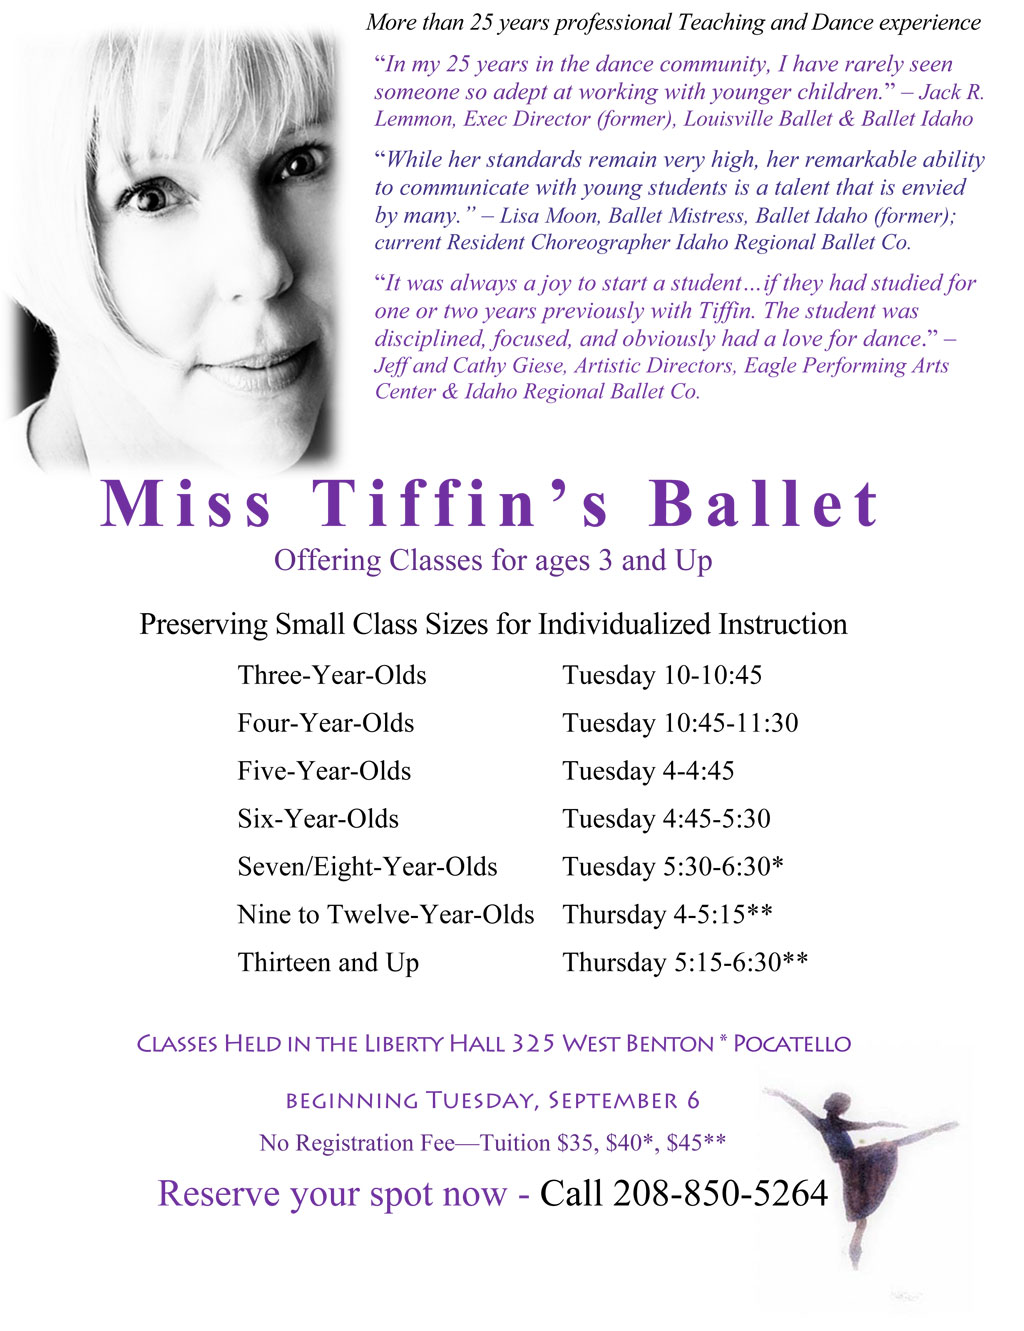 Miss Tiffin's Ballet classes for kids